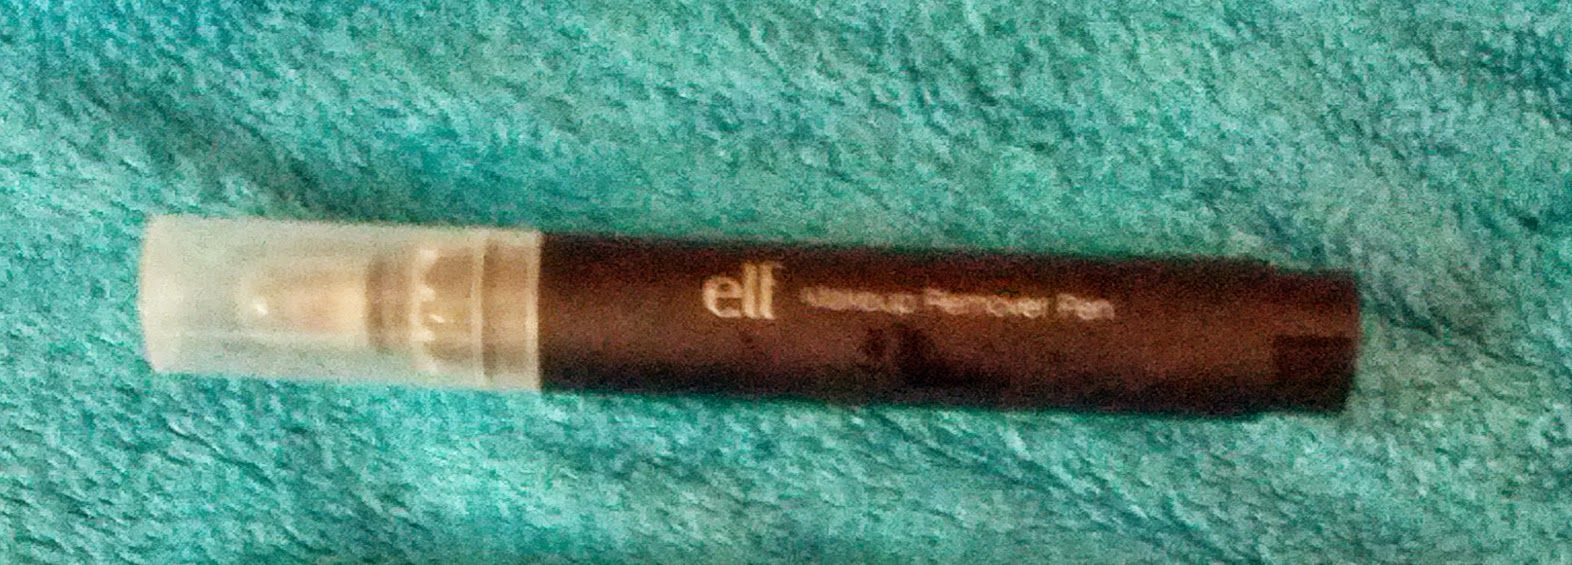 Best Beauty for my Buck Product Review ELF Makeup